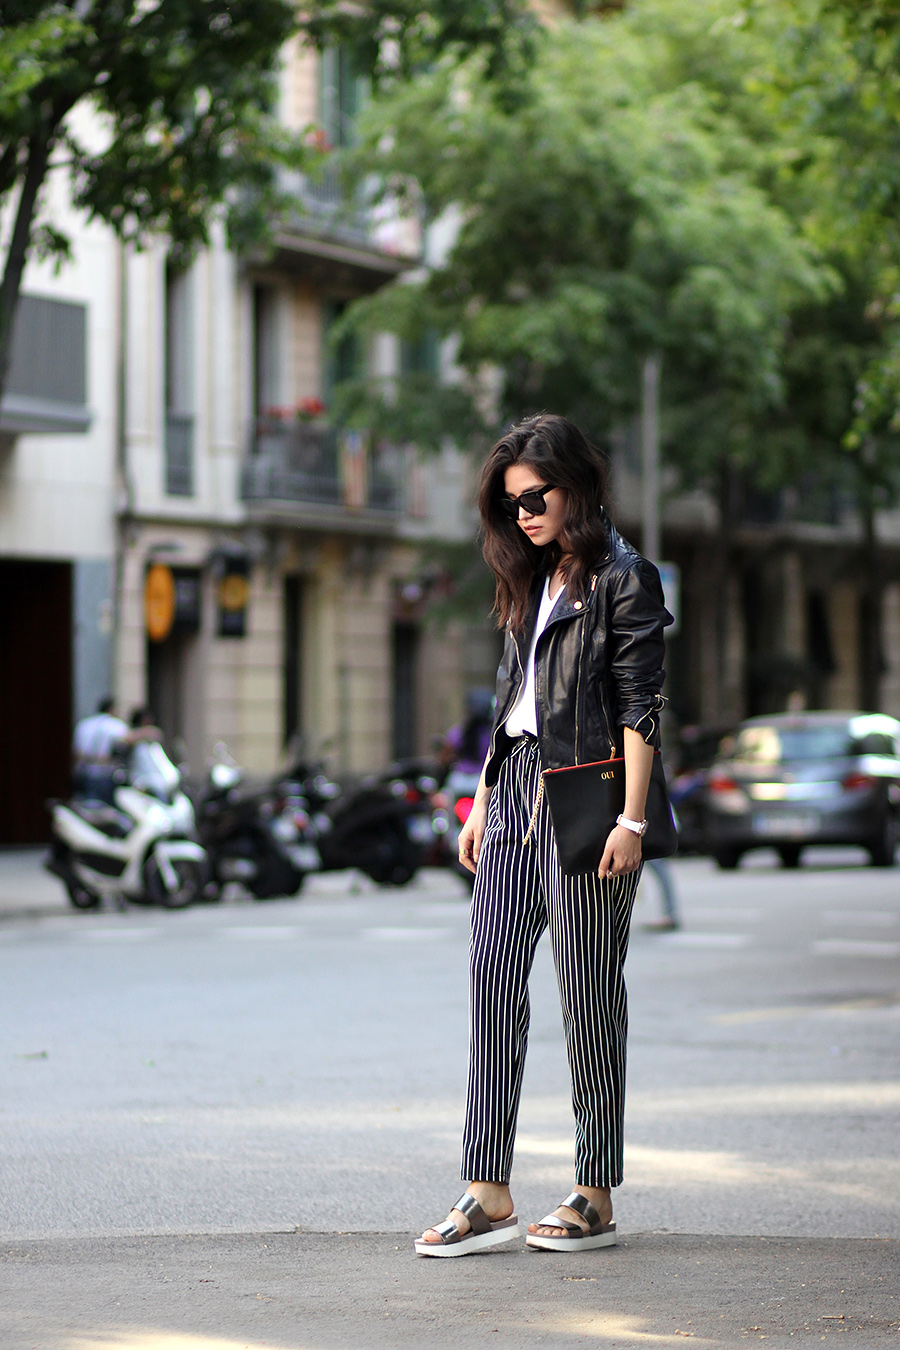 Adriana Gastélum is wearing black and white vertically striped trousers from Sheinside